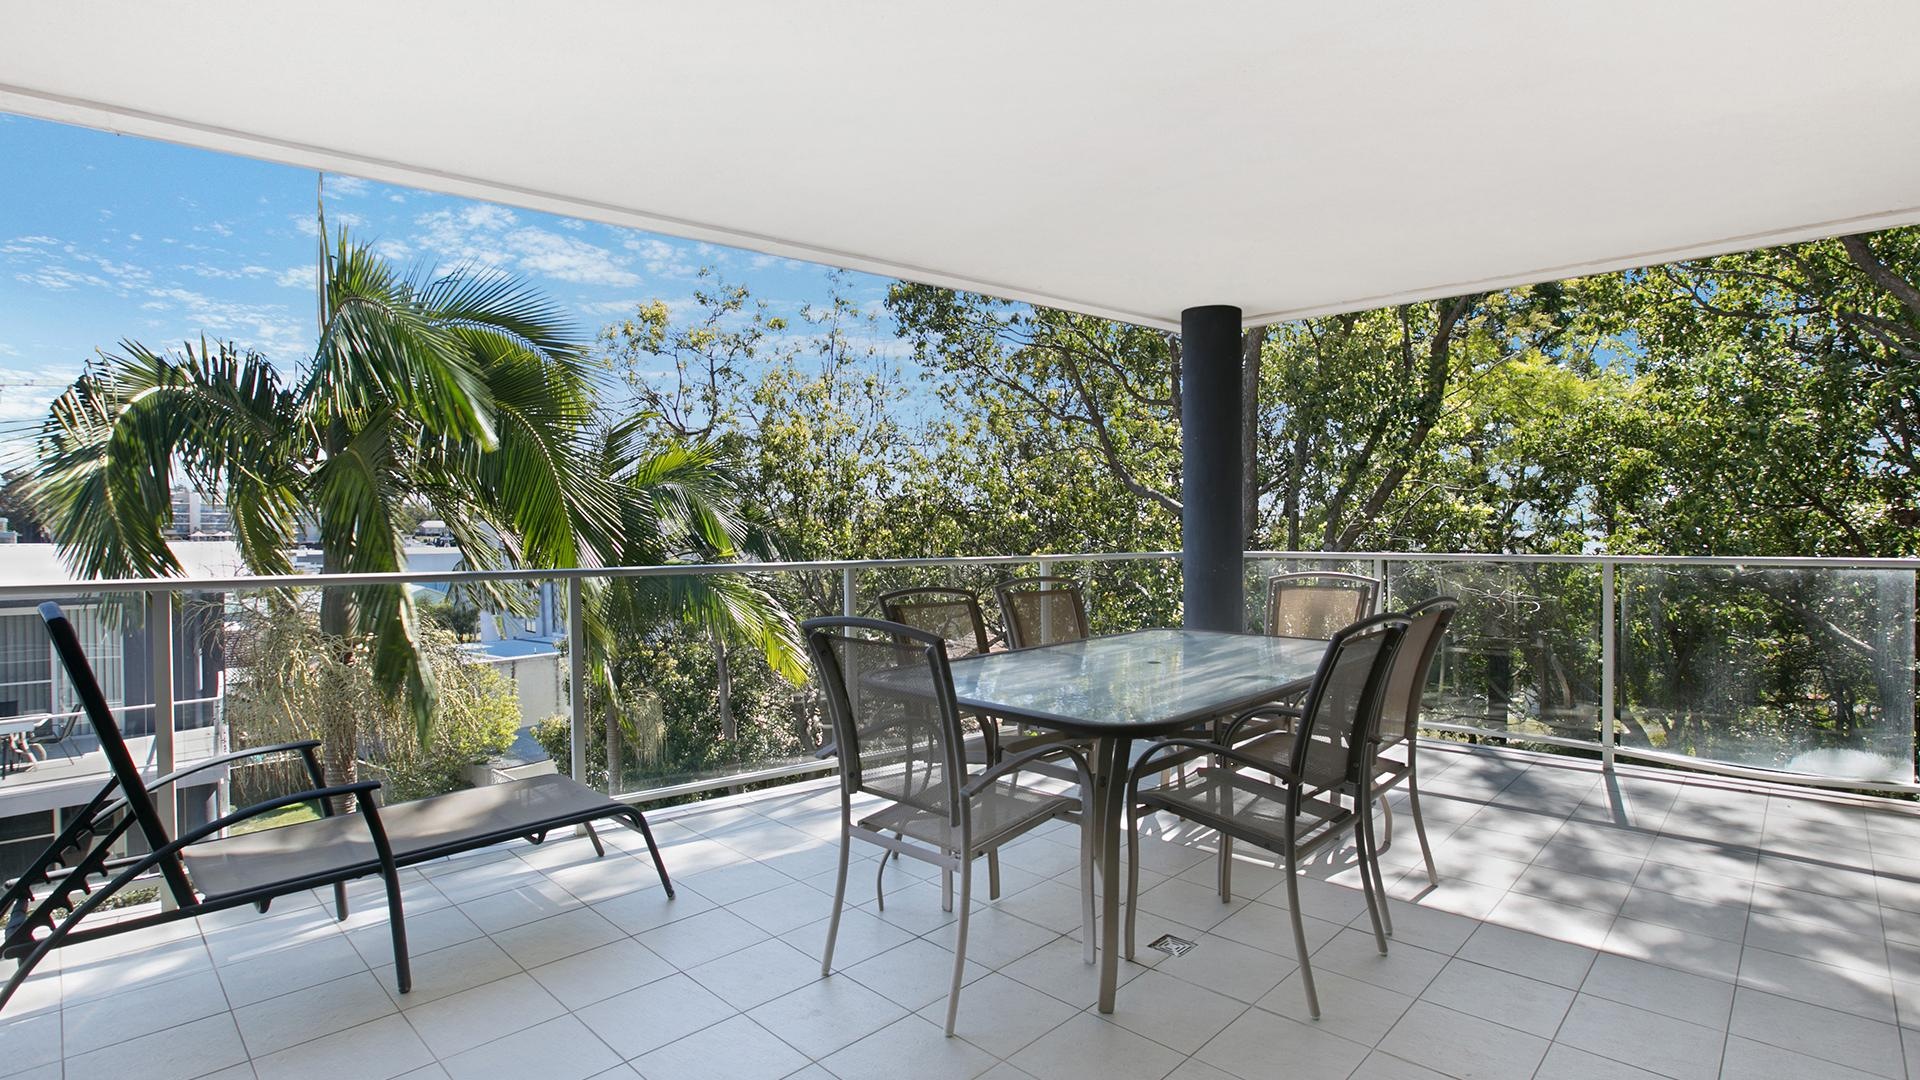 Three-Bedroom Apartment Resort View image 1 at Mantra Nelson Bay by Port Stephens Council, New South Wales, Australia